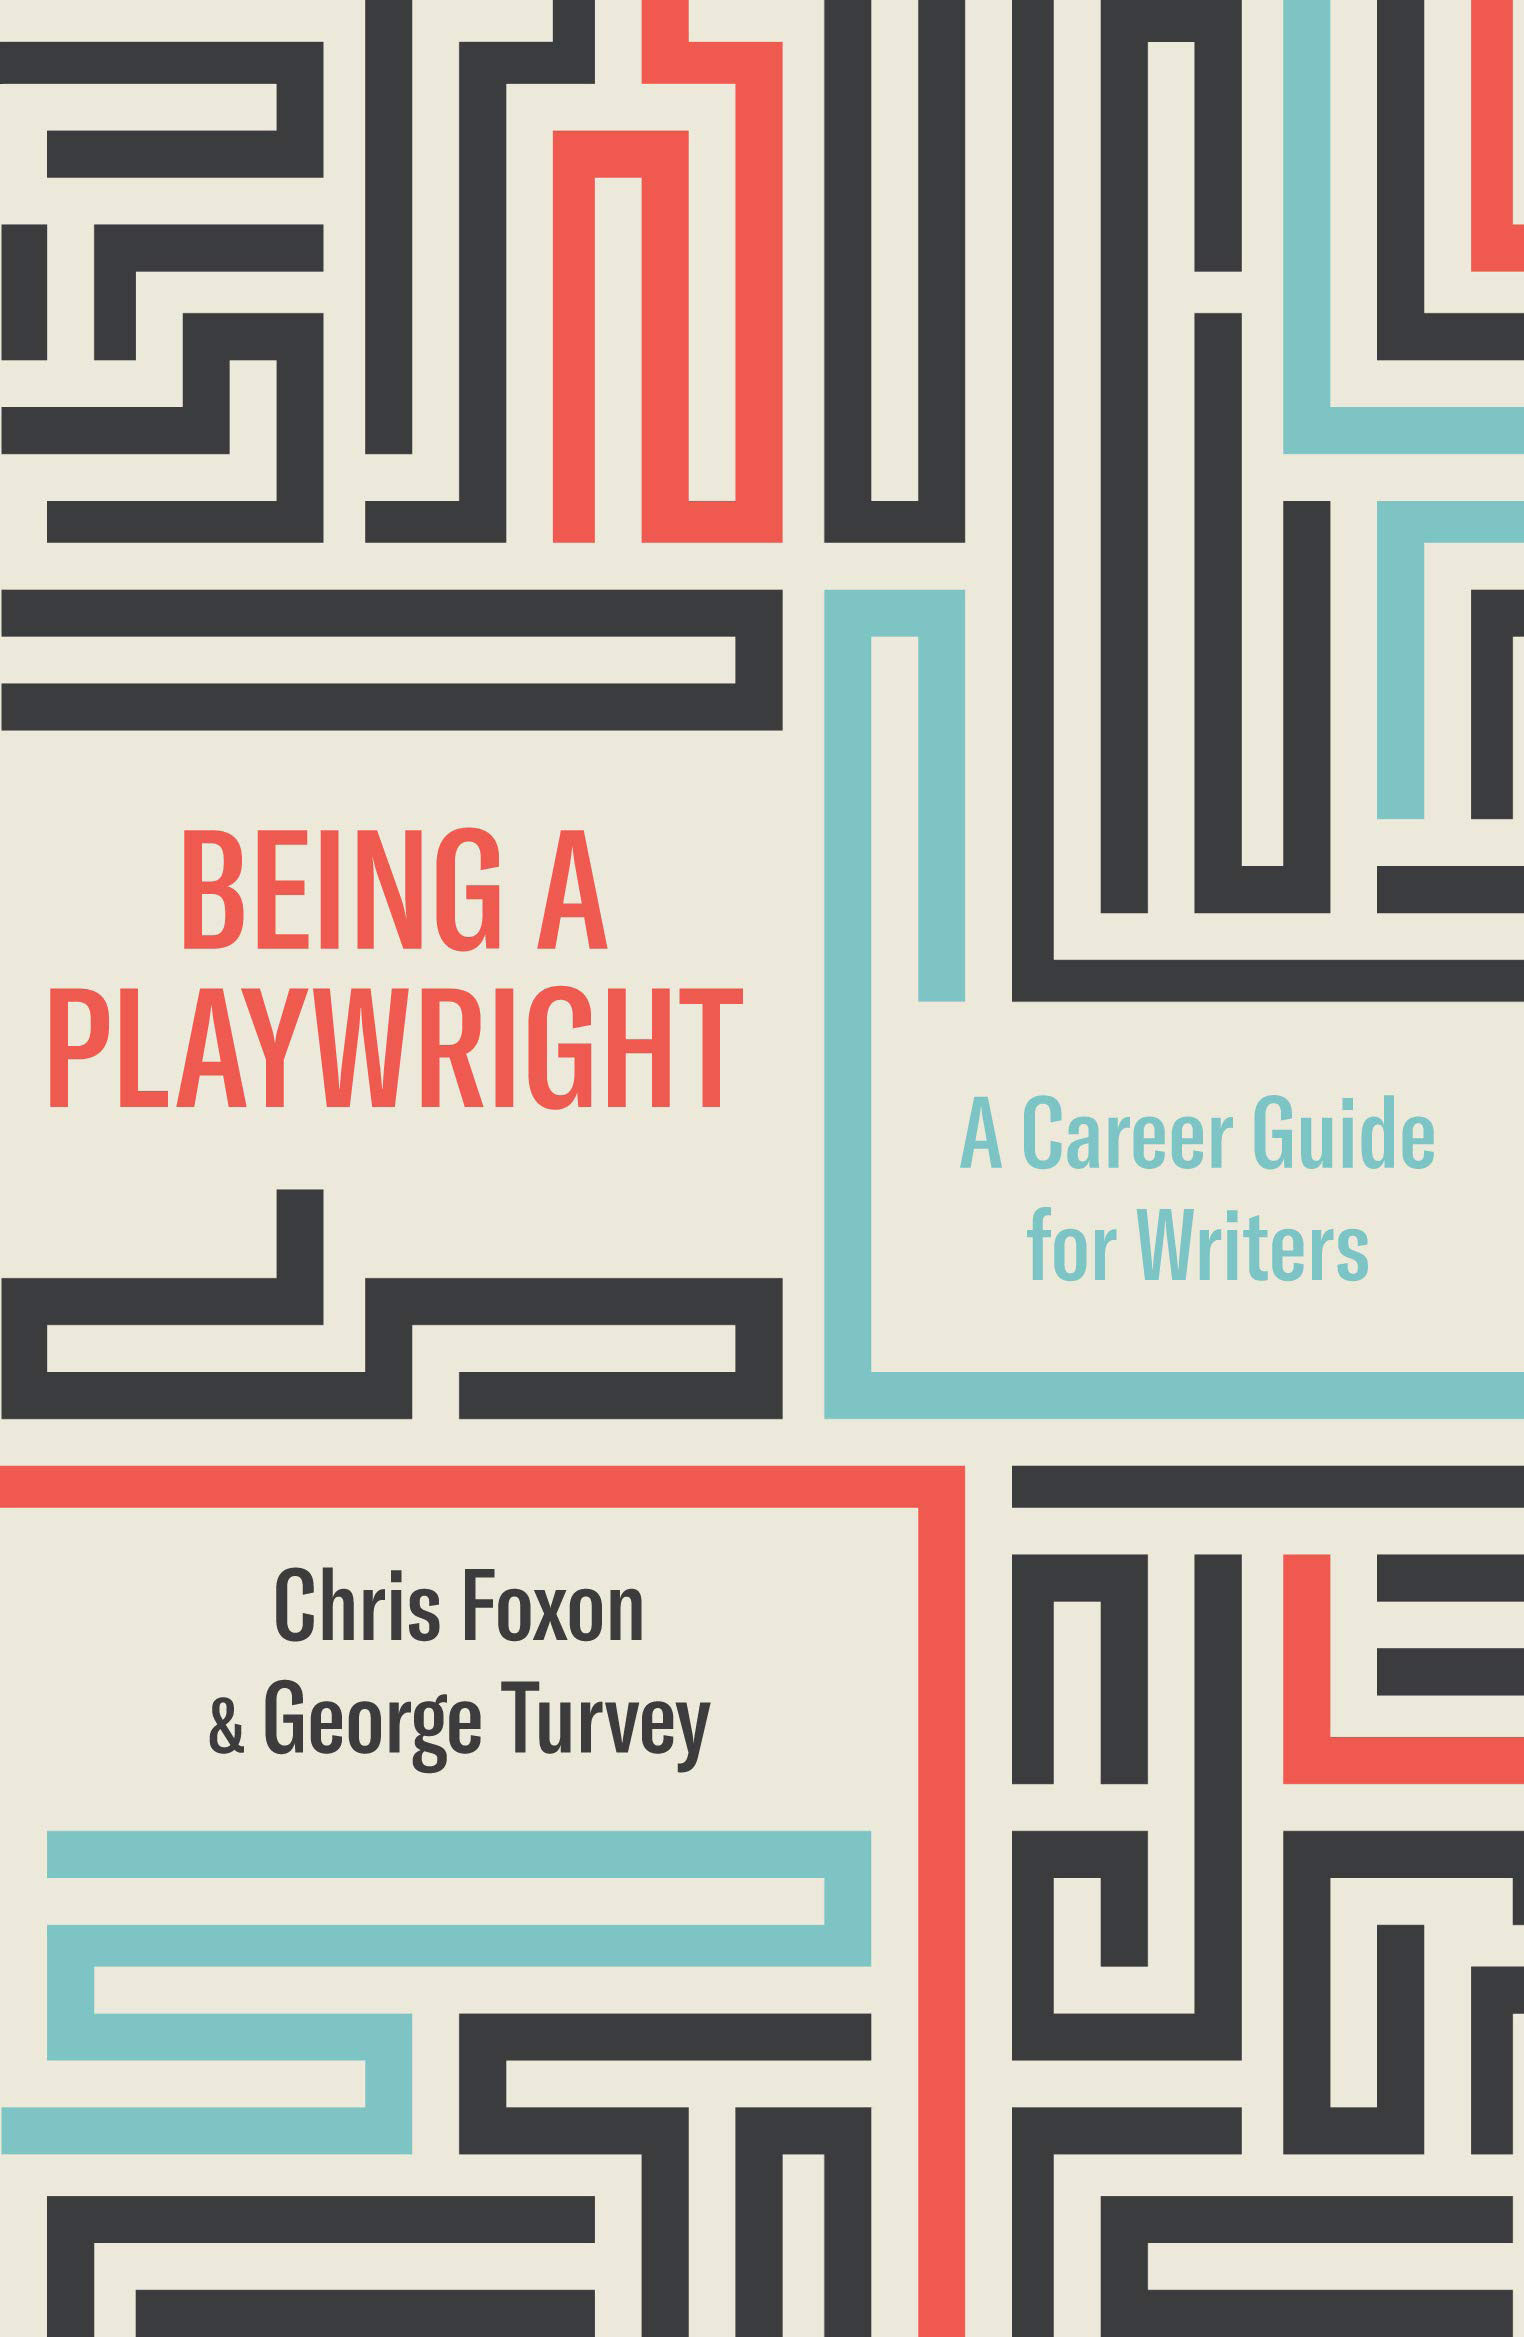 Book Review: Being a Playwright – A Career Guide for Writers